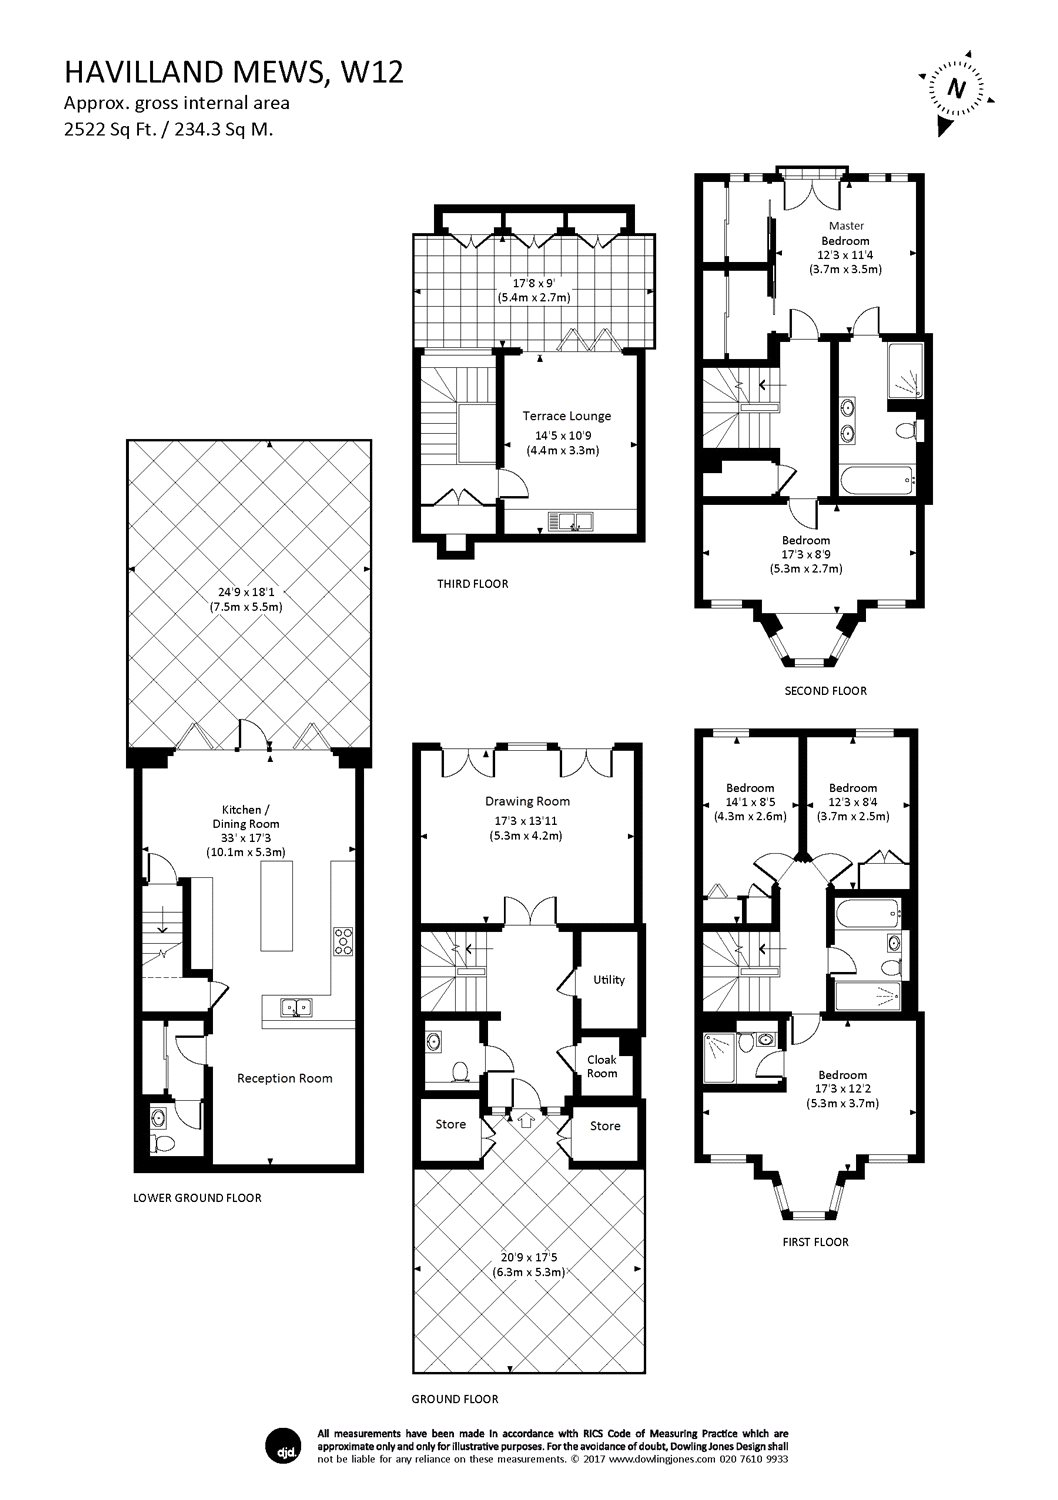 5 bedroom property for sale in havilland mews london w12 for 15 bruyeres mews floor plans